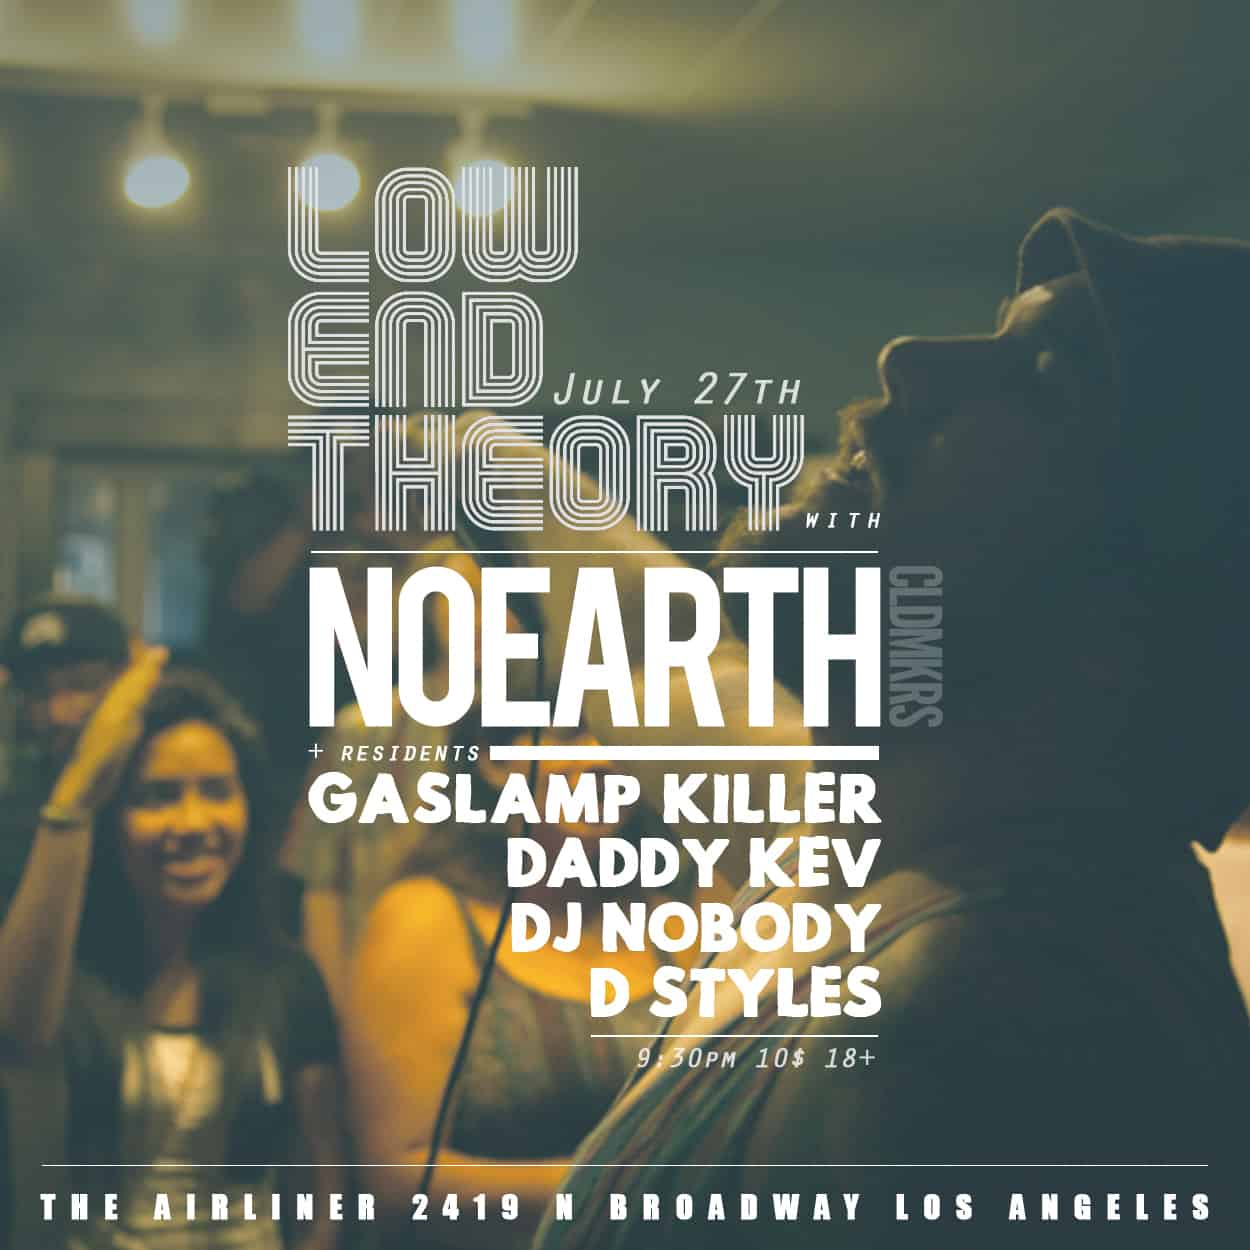 noearth - low end theory - flyer design